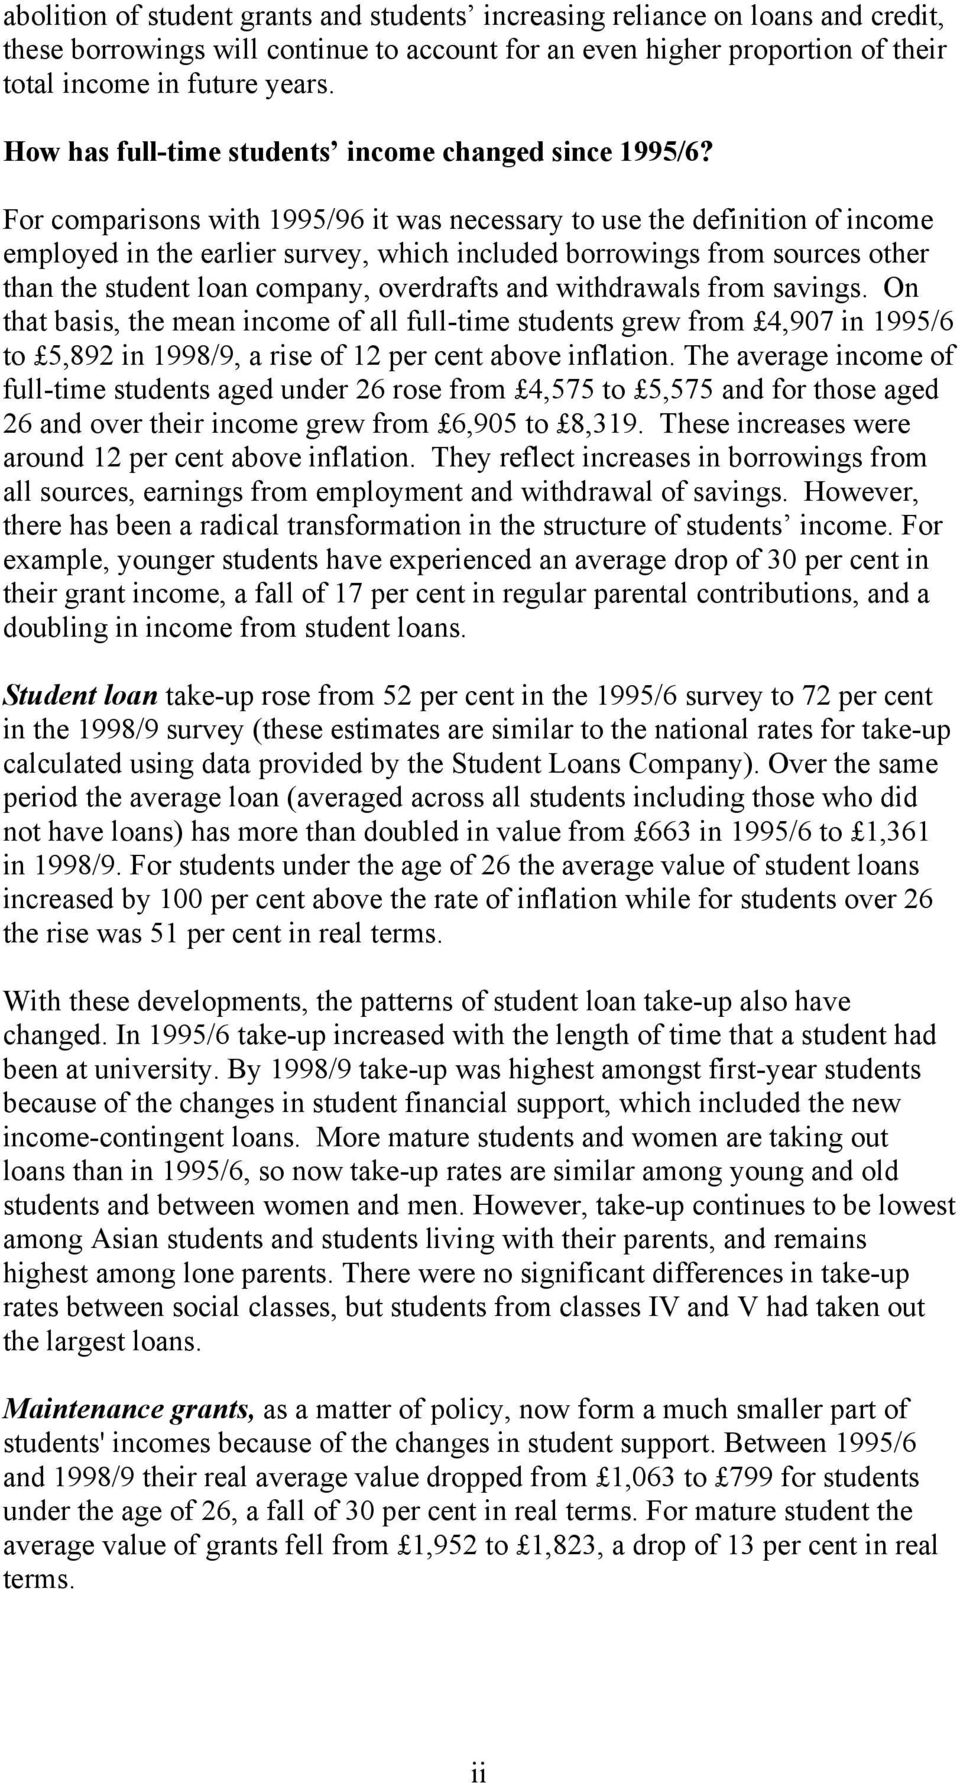 For comparisons with 1995/96 it was necessary to use the definition of income employed in the earlier survey, which included borrowings from sources other than the student loan company, overdrafts